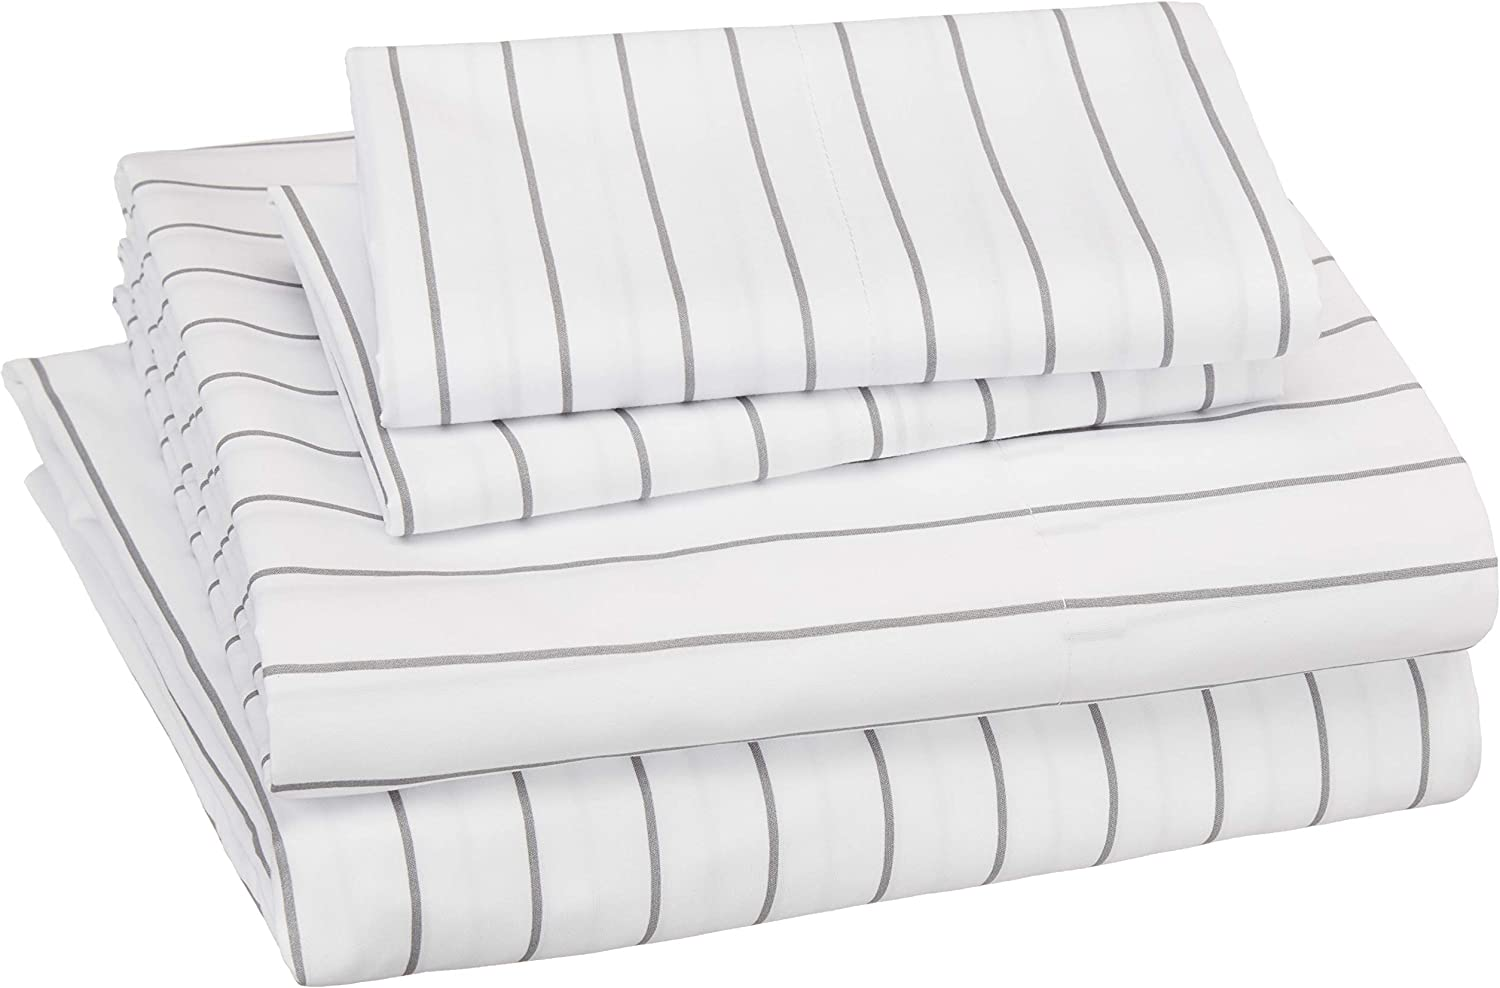 AmazonBasics Soft Microfiber Sheet Set with Elastic Pockets - Queen, Grey Pinstripe